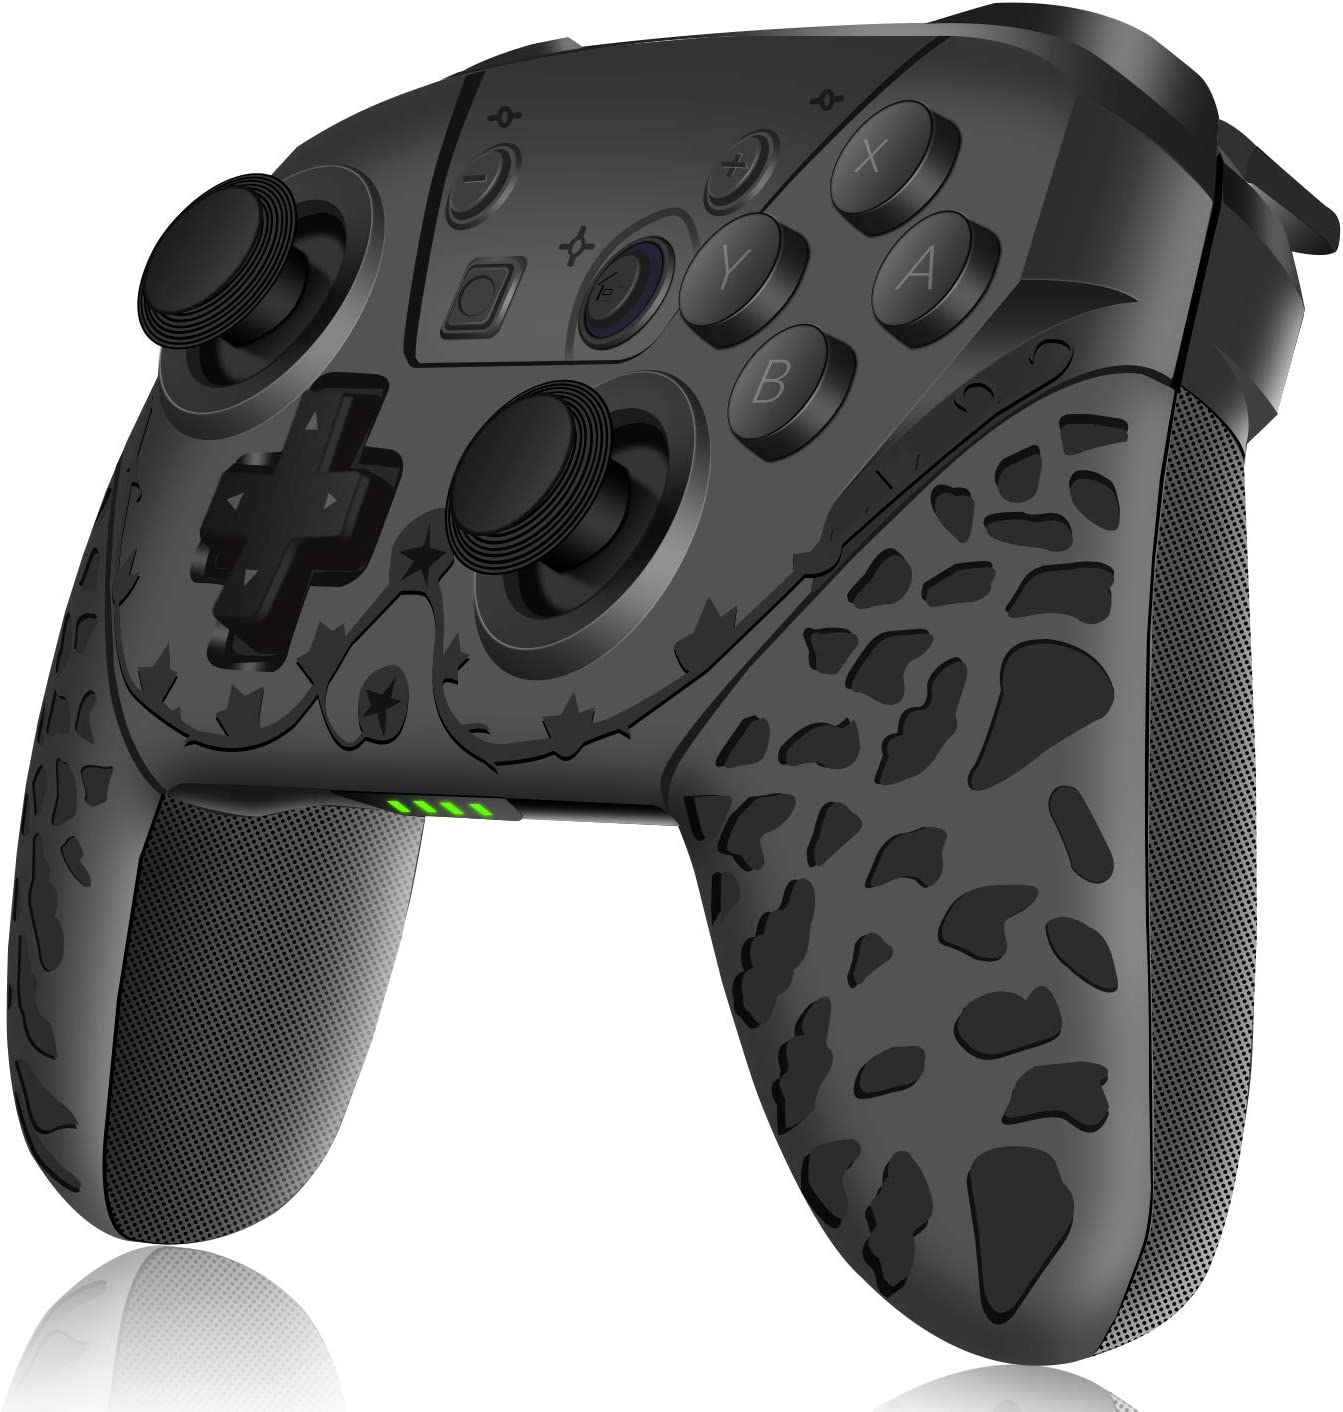 Amazon coupon code for Wireless Switch Controller for Nintendo